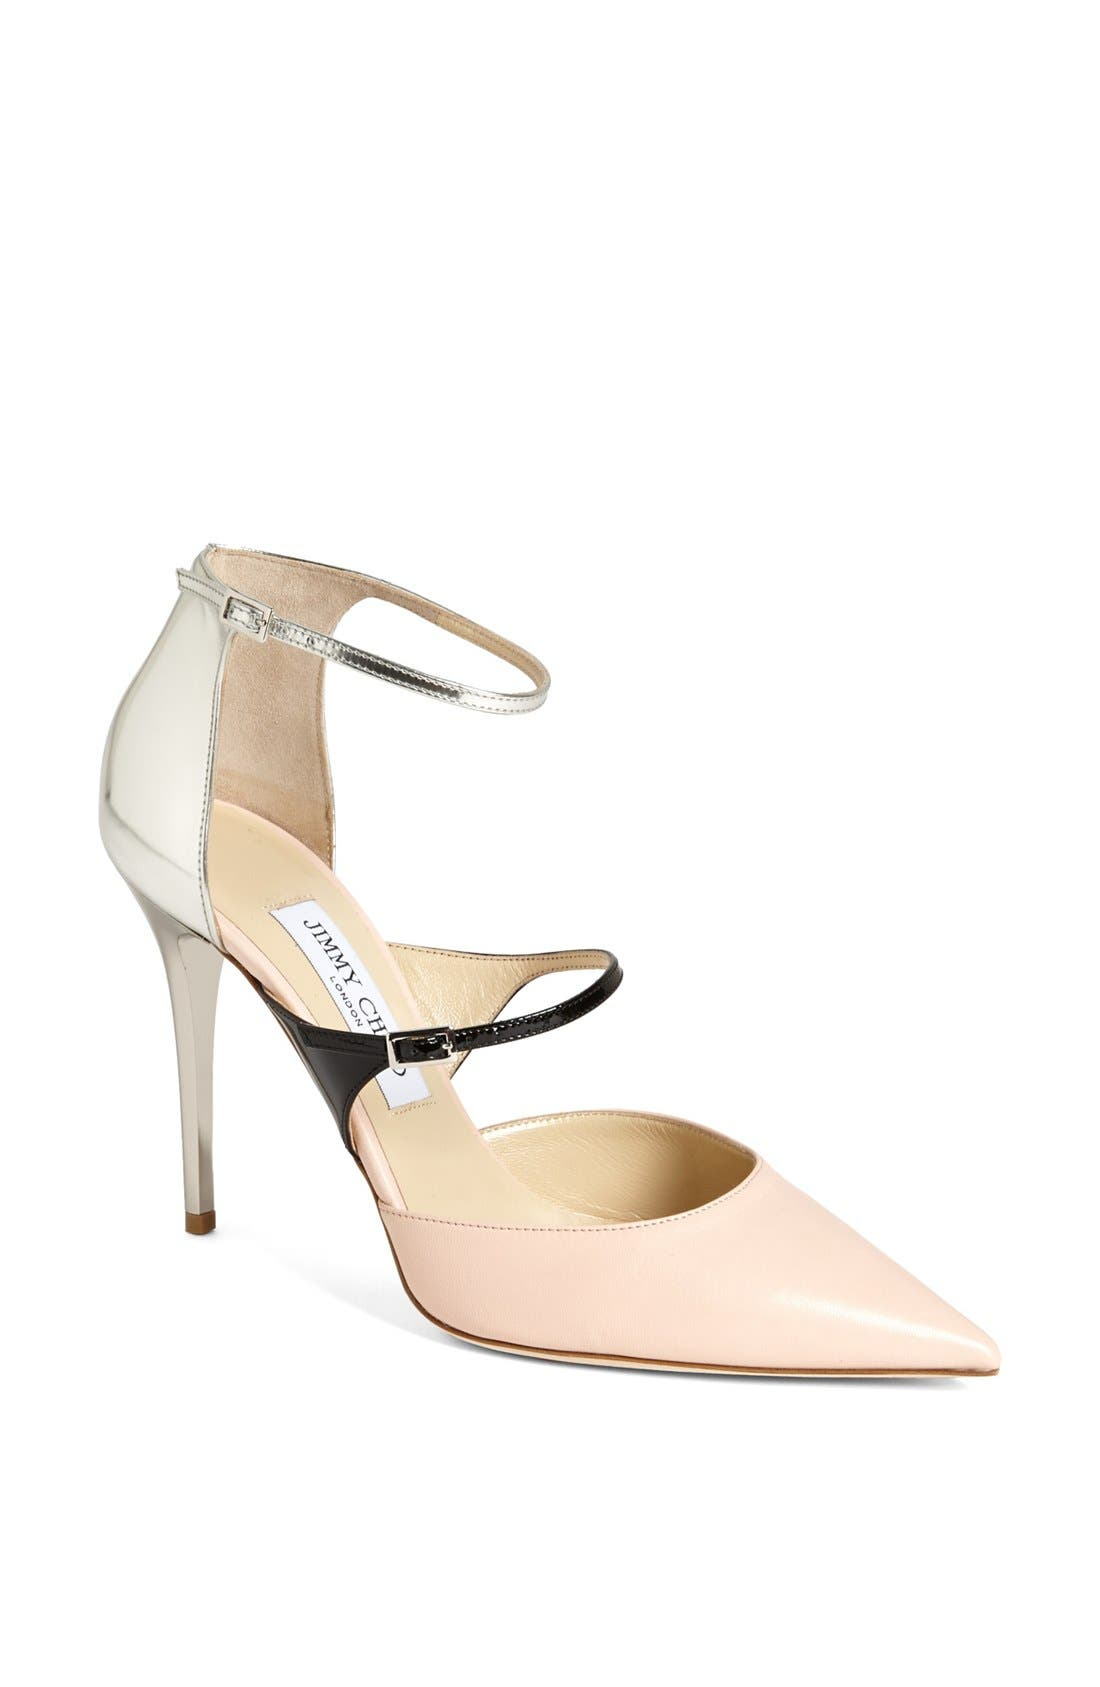 Main Image - Jimmy Choo 'Typhoon' Ankle Strap Pump